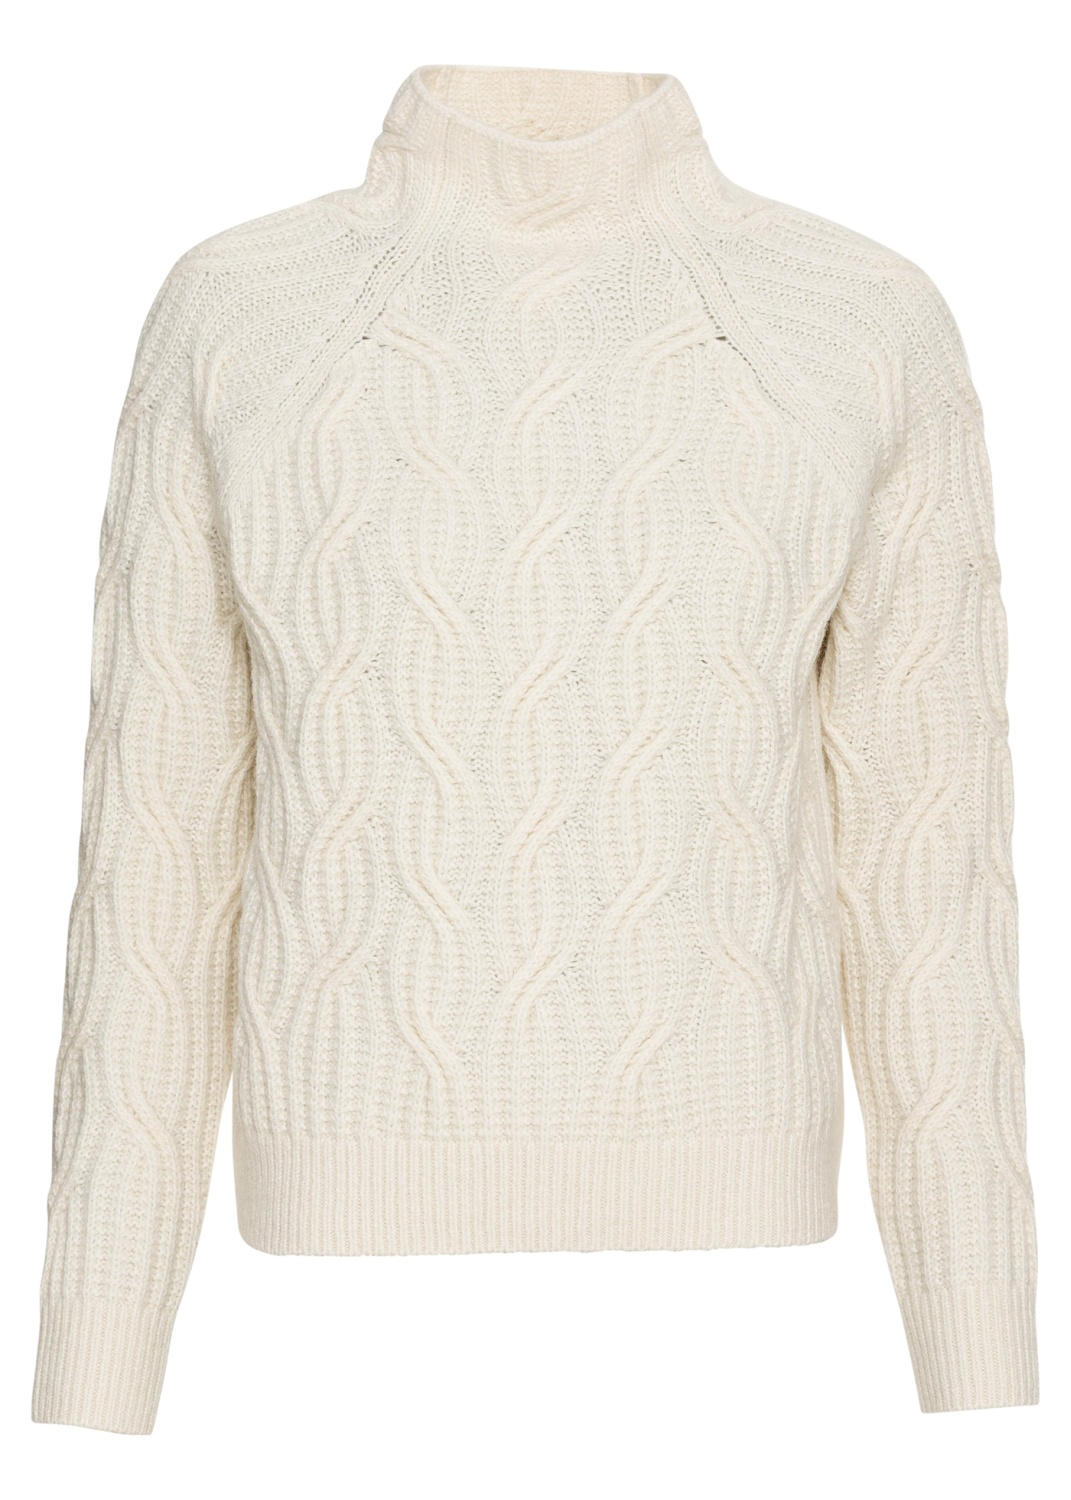 TEXTURE CABLE TURTLENECK image number 0